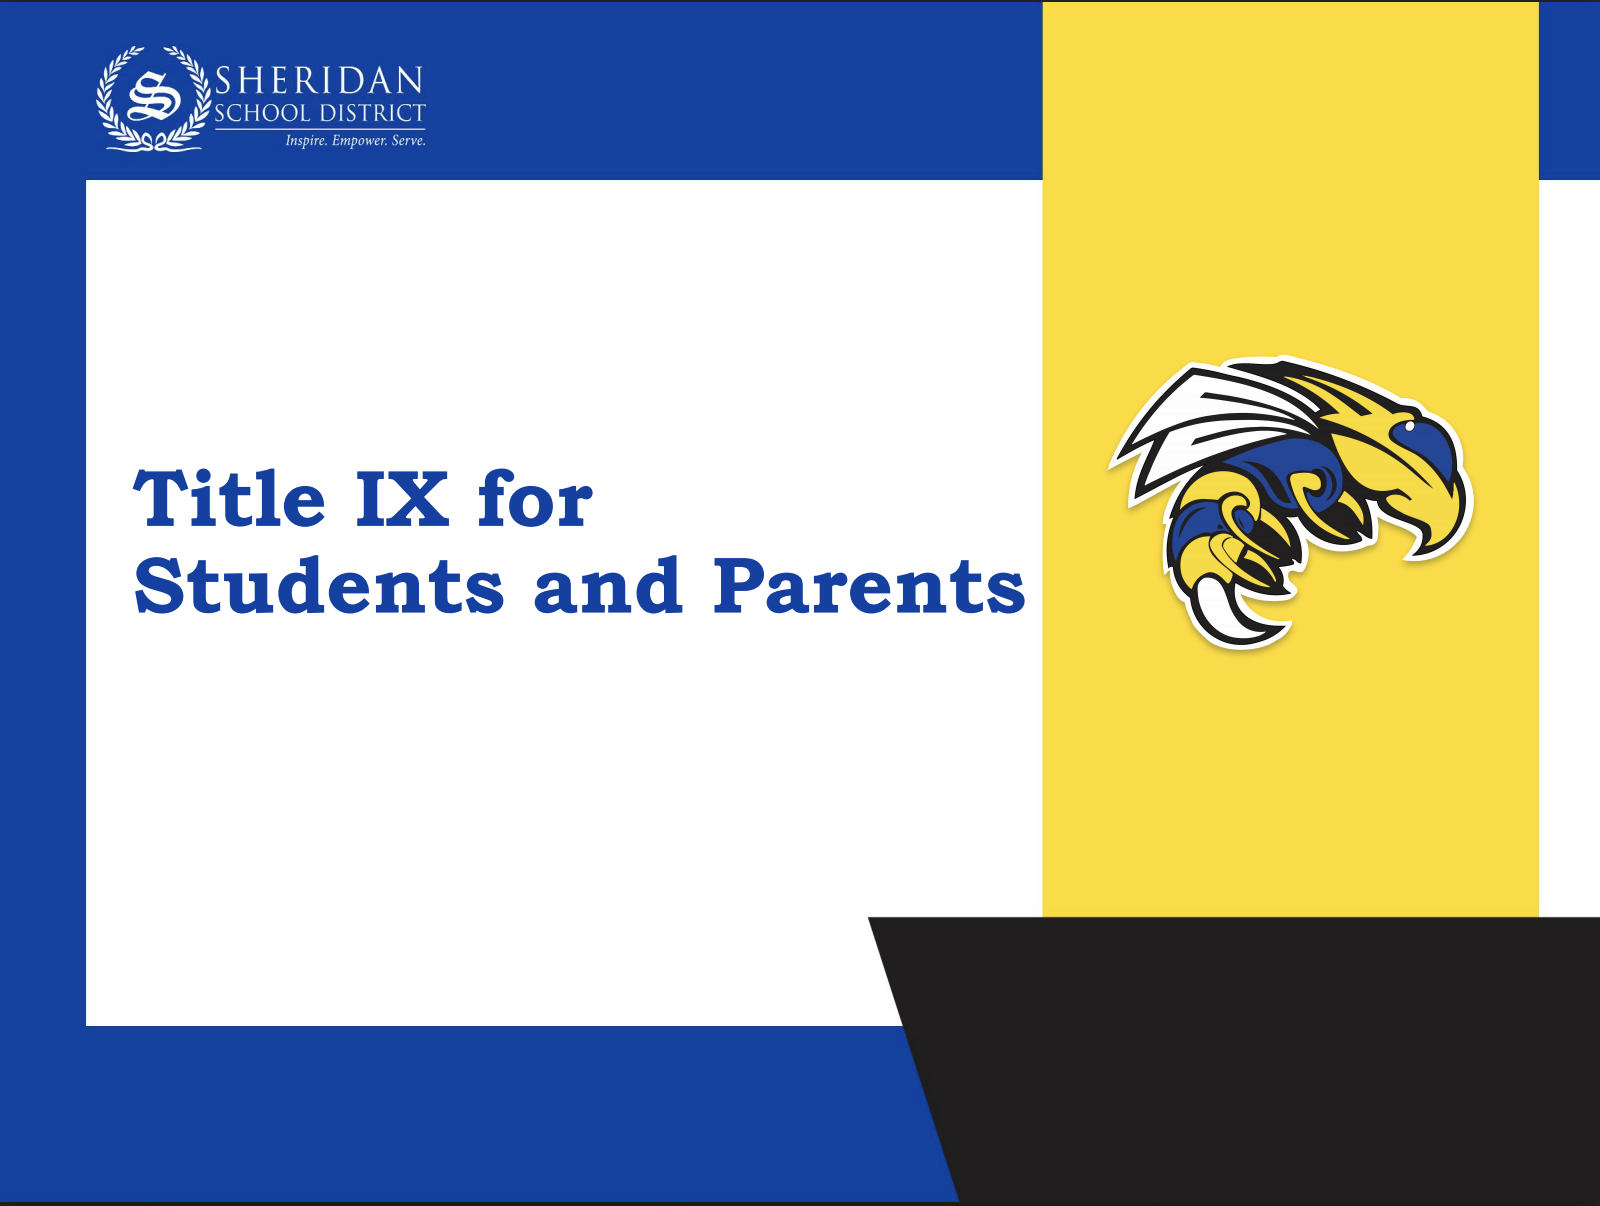 Title IX for Parents and Students